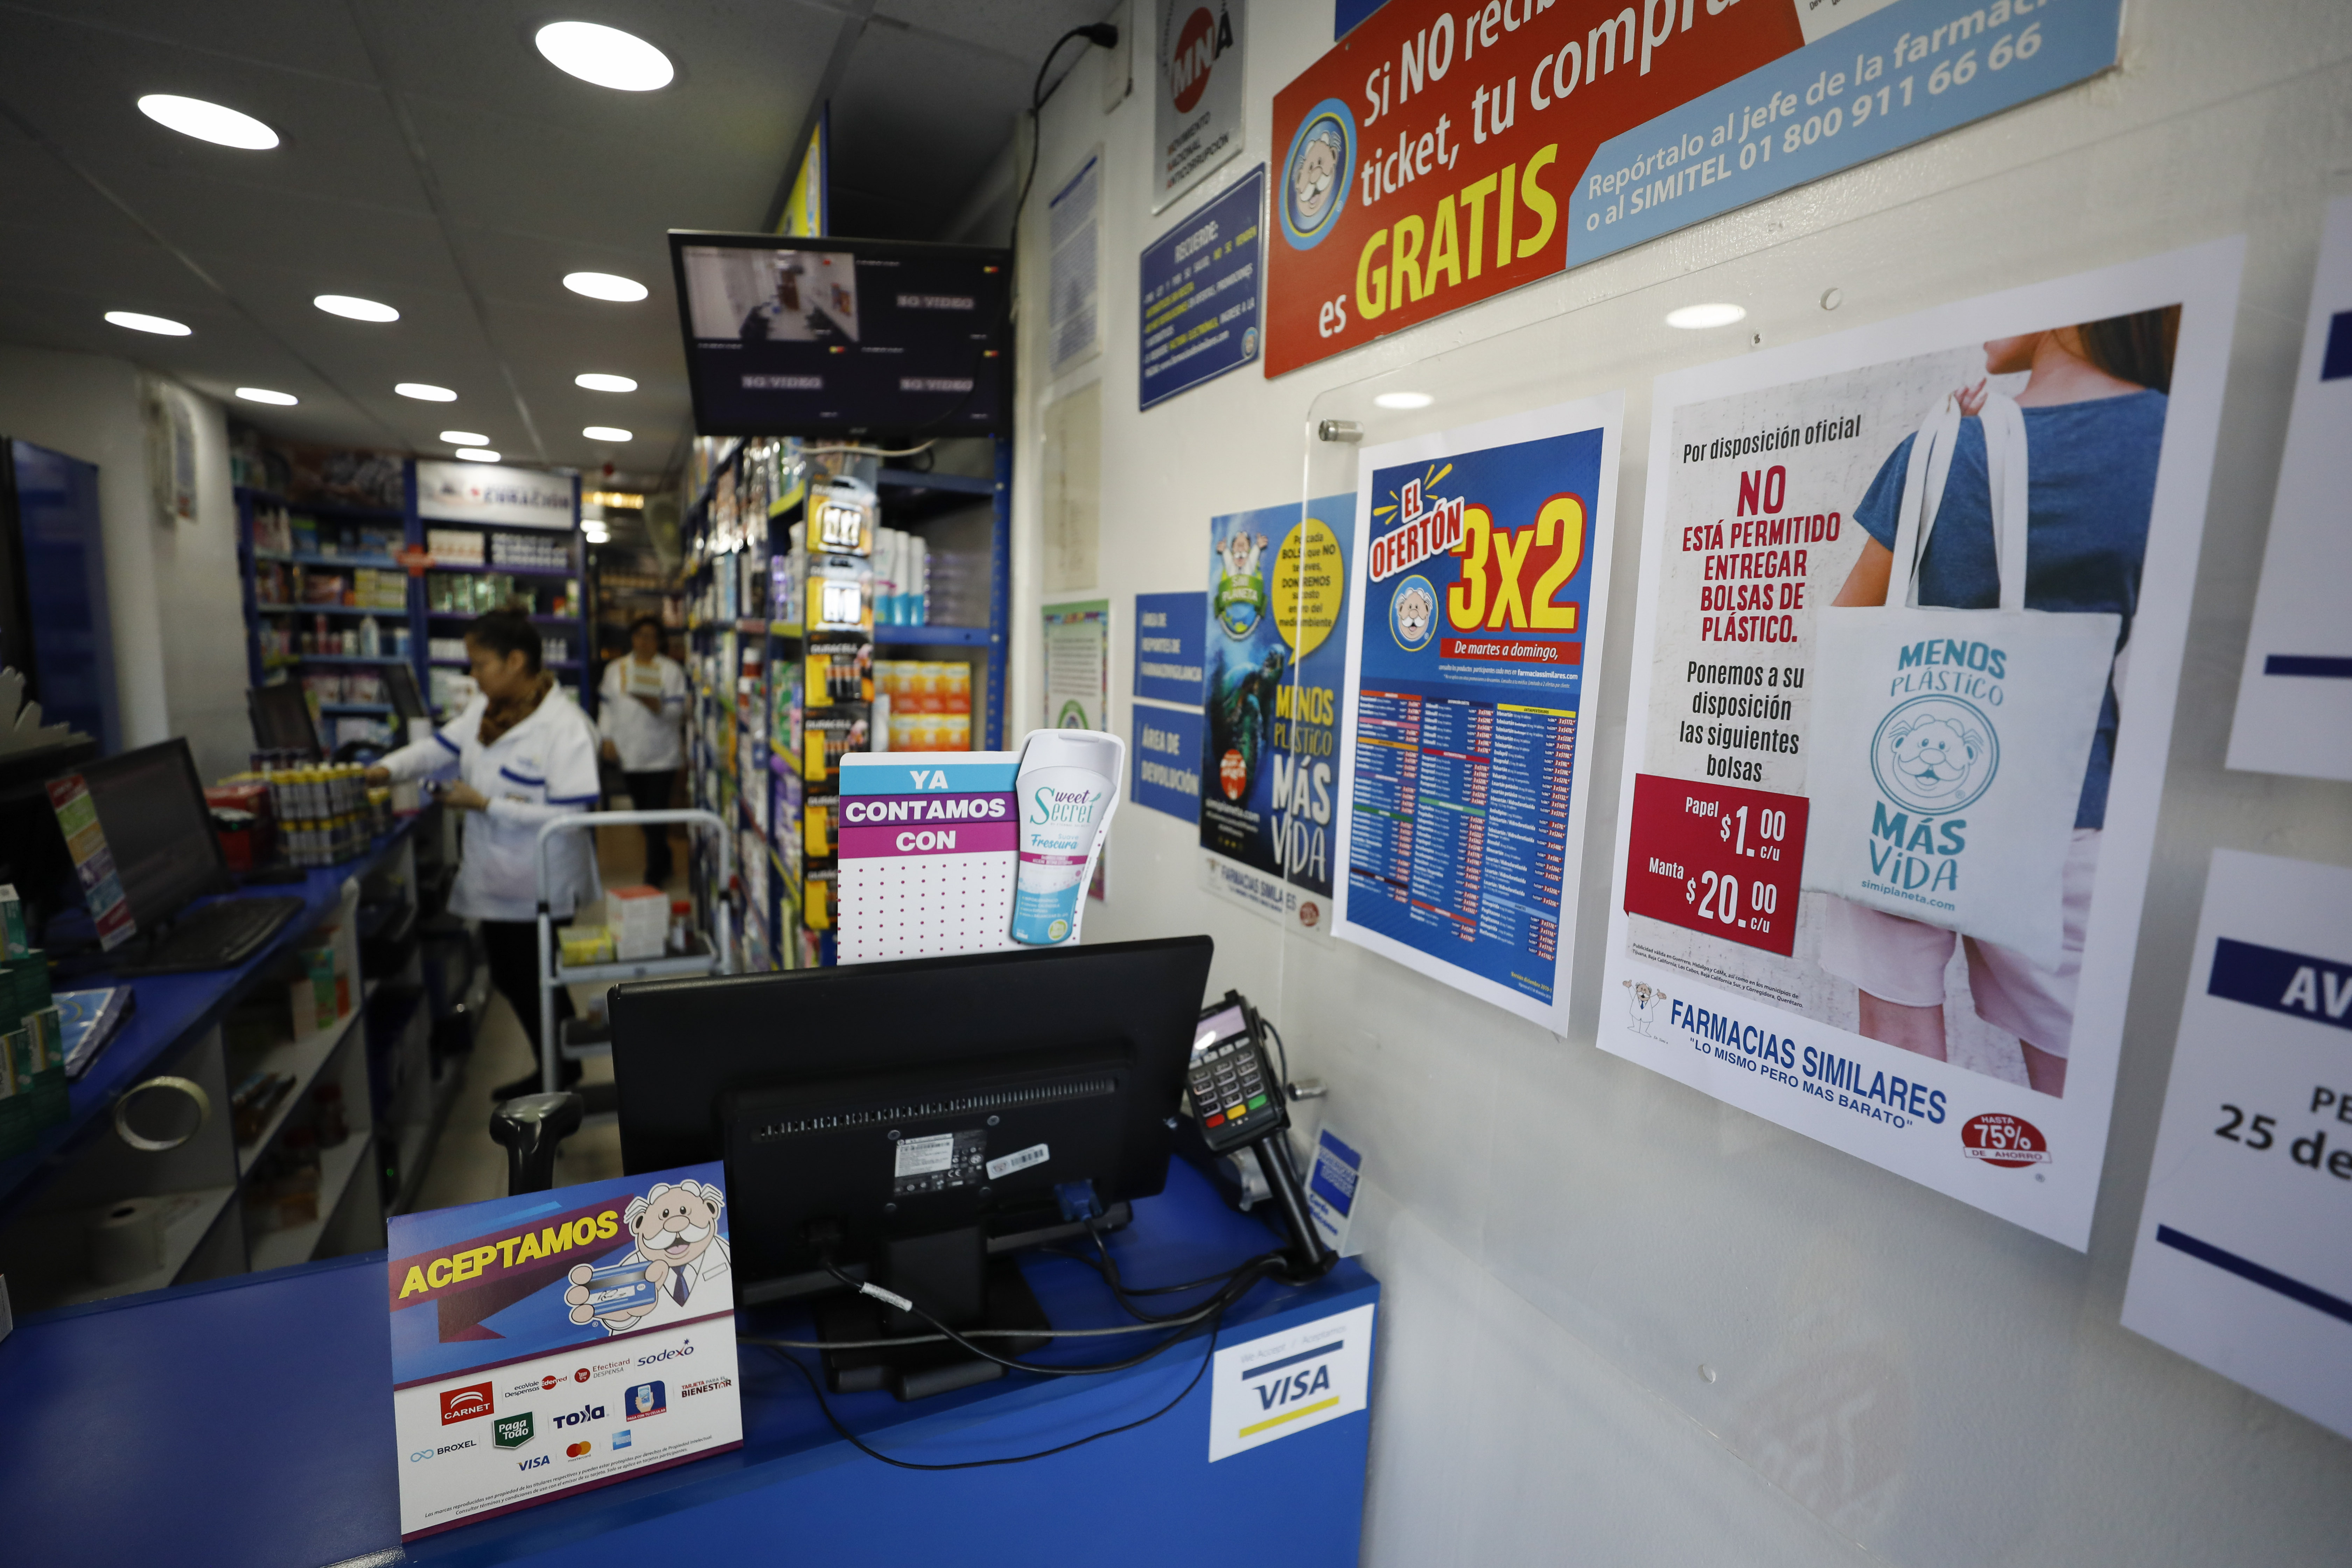 """xA sign posted at a pharmacy reads, in Spanish, """"By official order, it is not permitted to provide plastic bags. We are offering the following bags: Paper, 1 peso [around 5 cents], cotton, 20 pesos [around $1US],"""" in central Mexico City."""